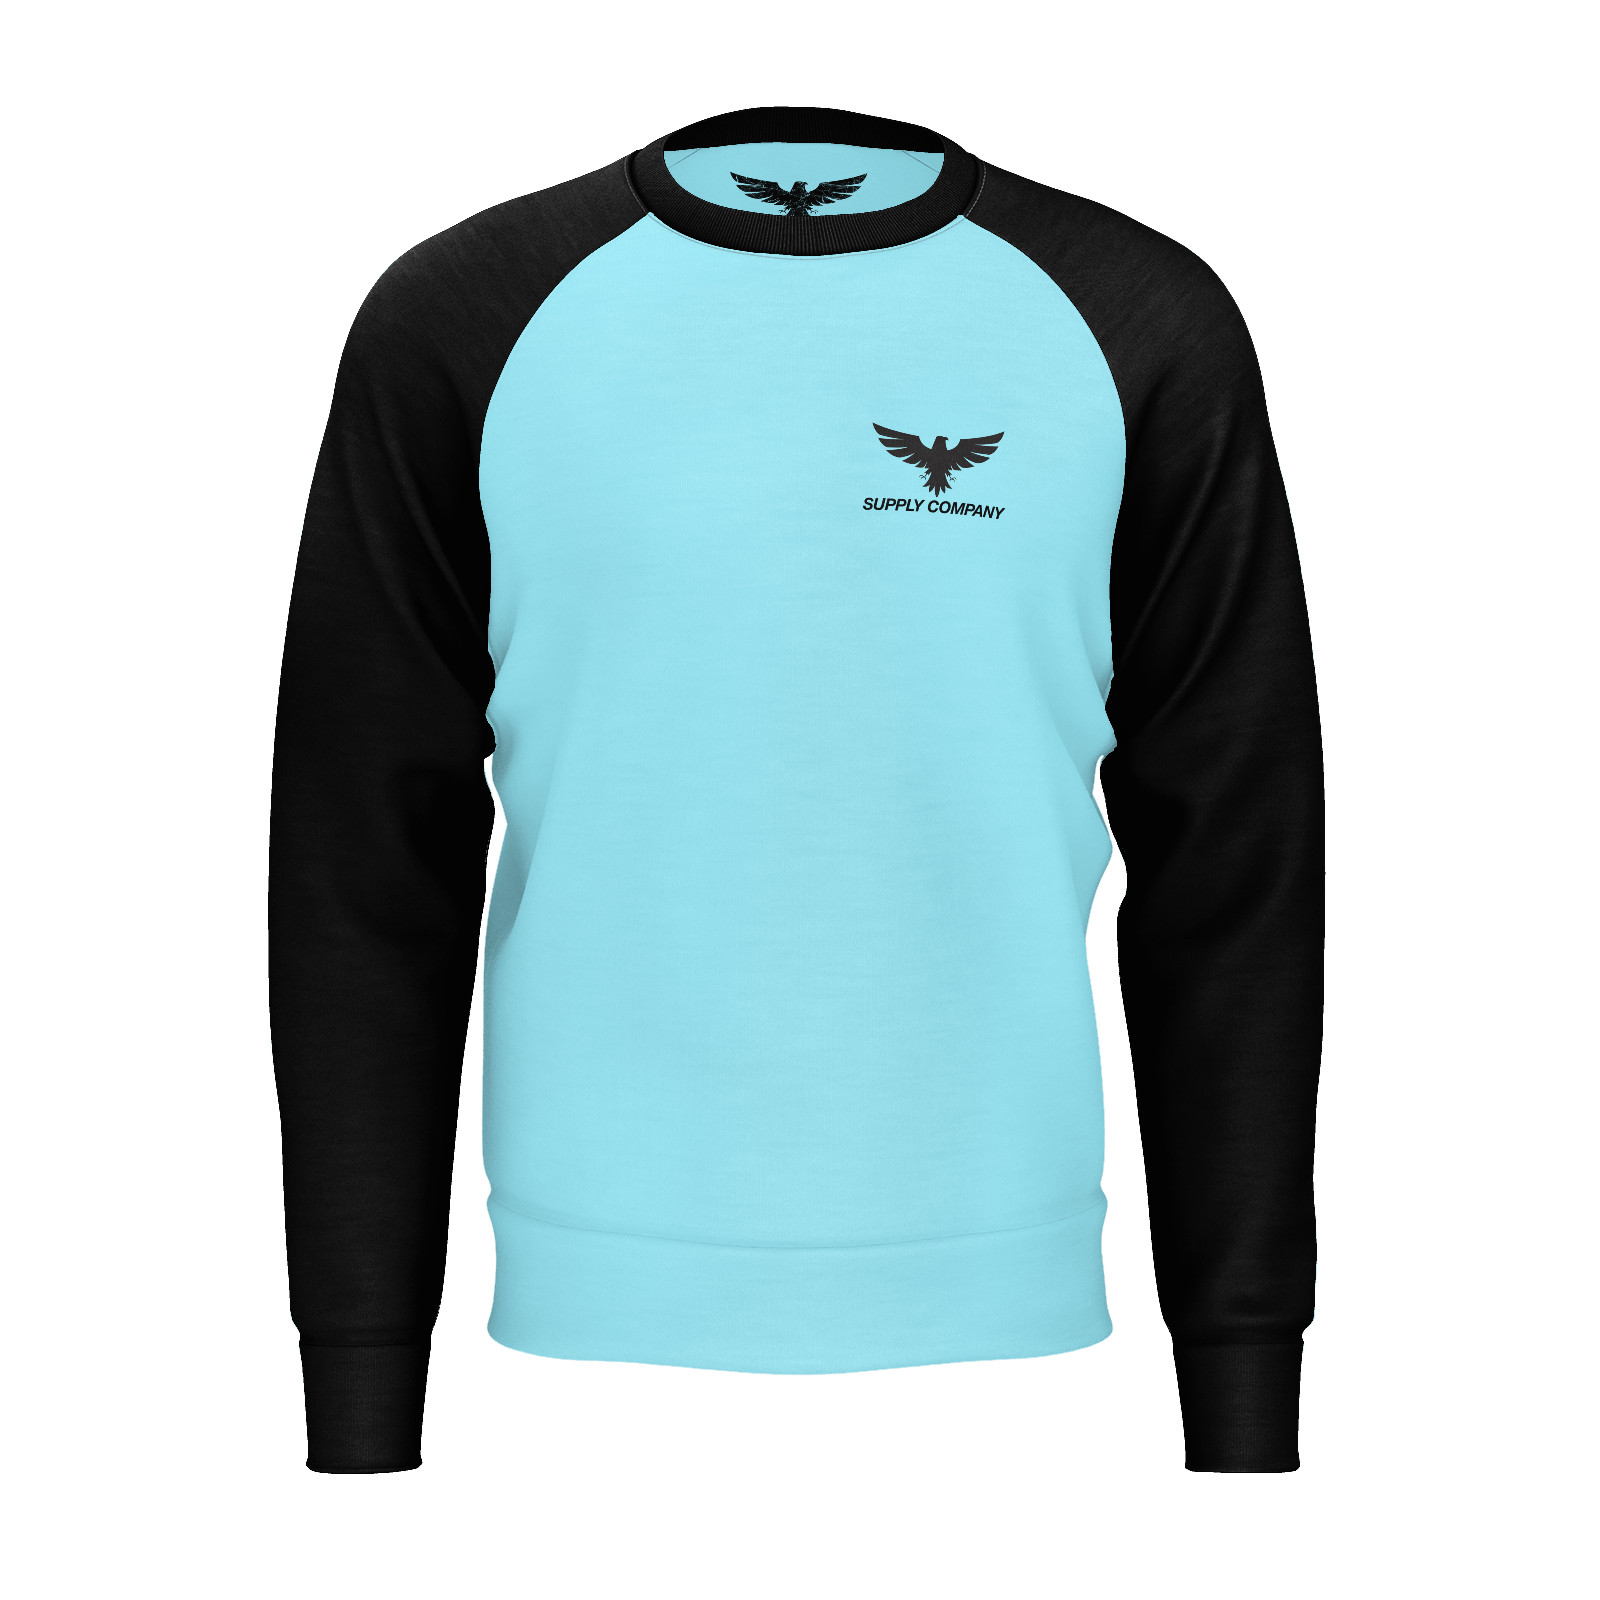 Men's Original Swell Sustainable Raglan Crewneck Sweatshirt - Find Your Coast Supply Co.